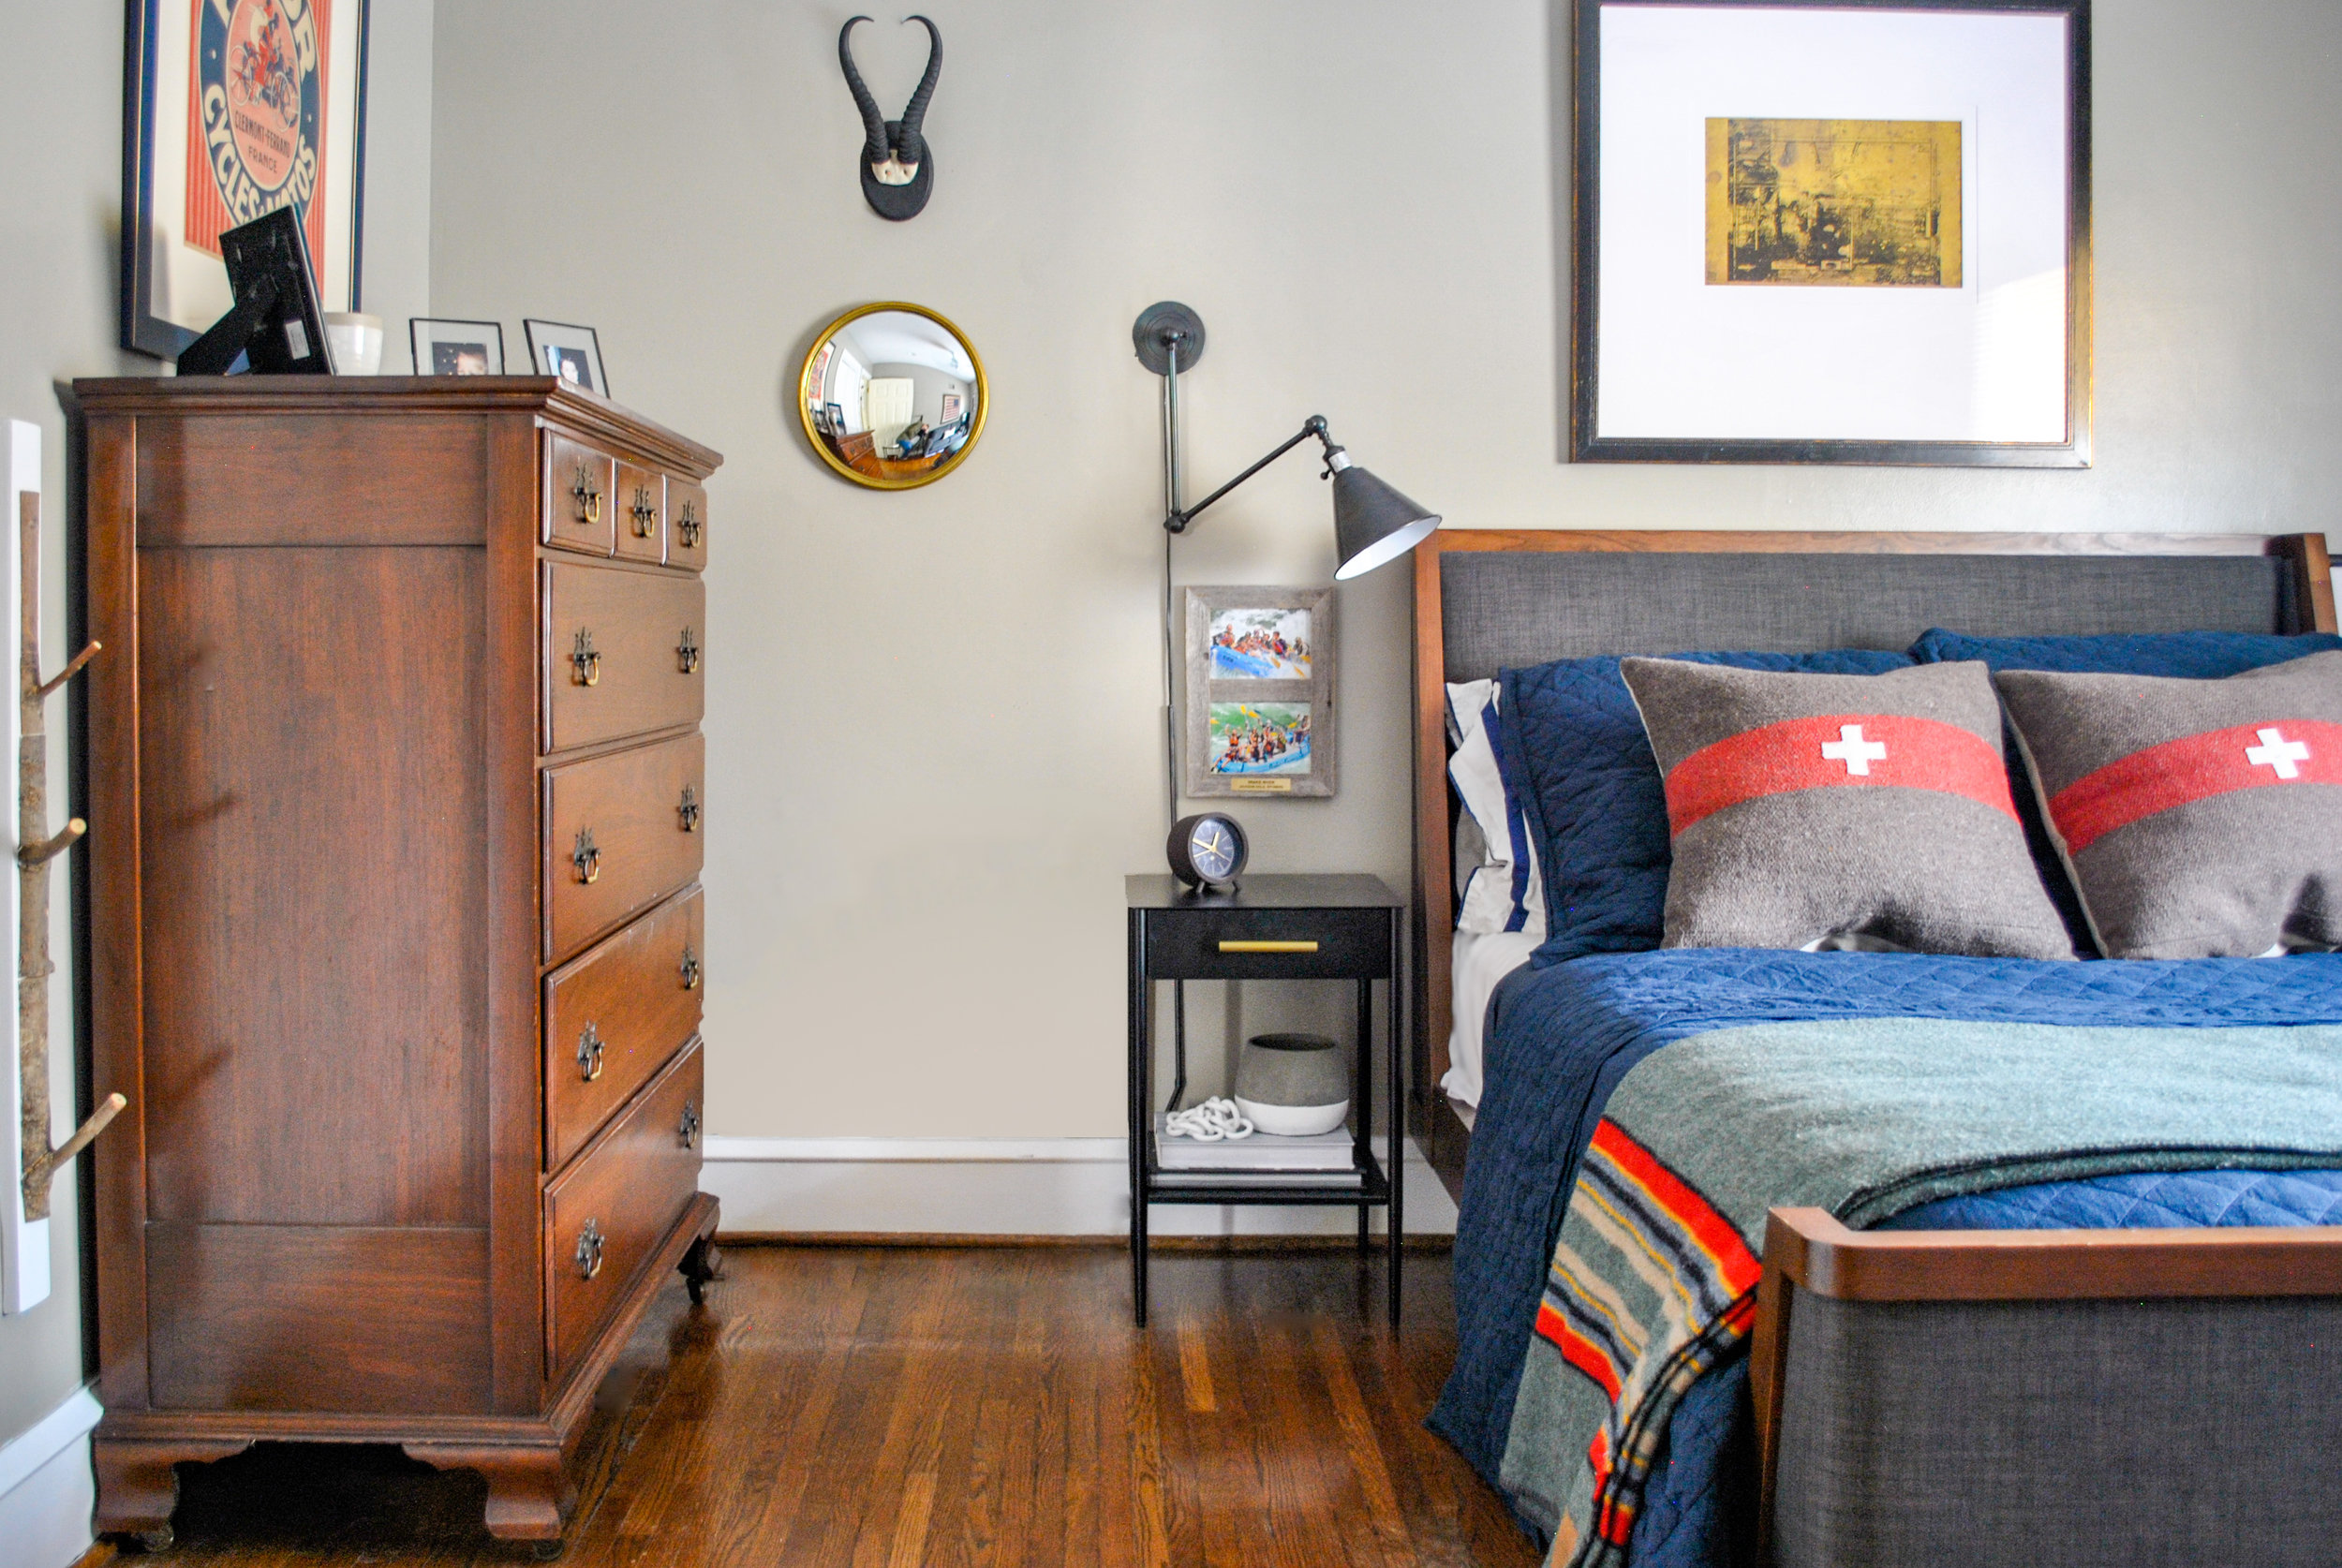 This teen boys bedroom packs a punch in a small space, with vintage army pillows, a camping blanket and unique artwork it has a classic preppy feel, all with a nod to the outdoors. Designed by Sharp + Grey Interiors.